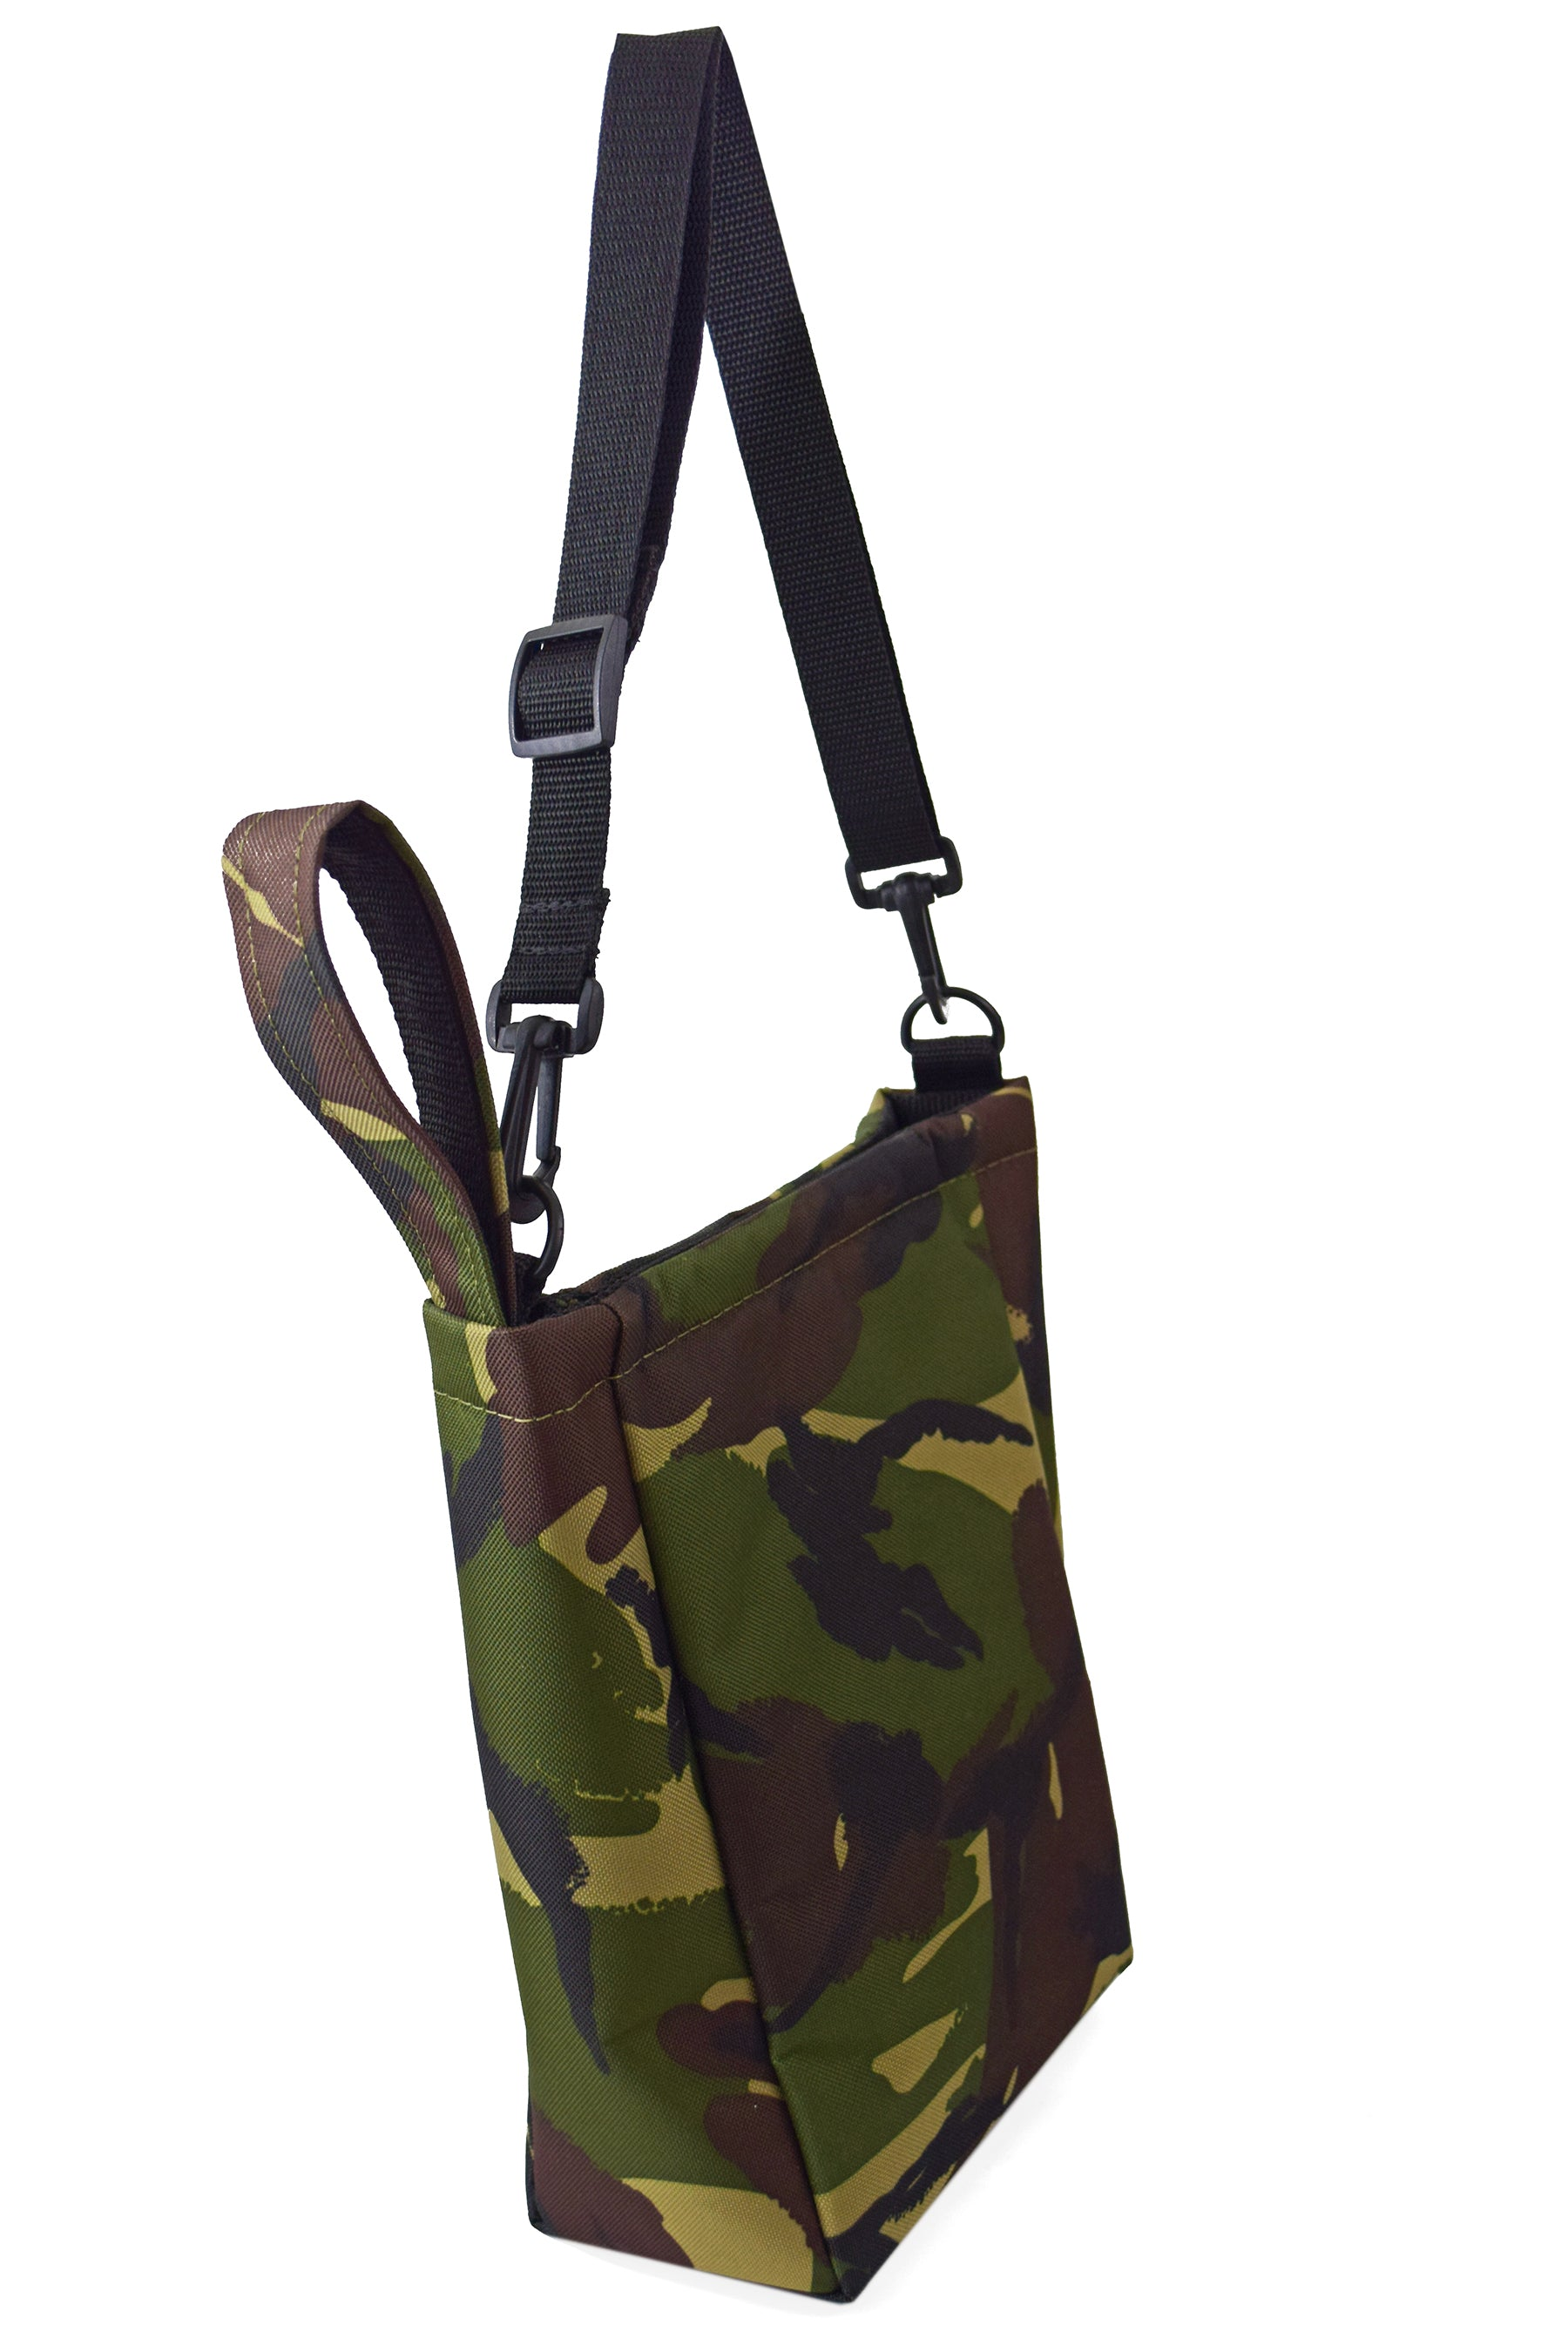 camouflage bumbag fanny pack by Goodstart Jones with shoulders strap hanging